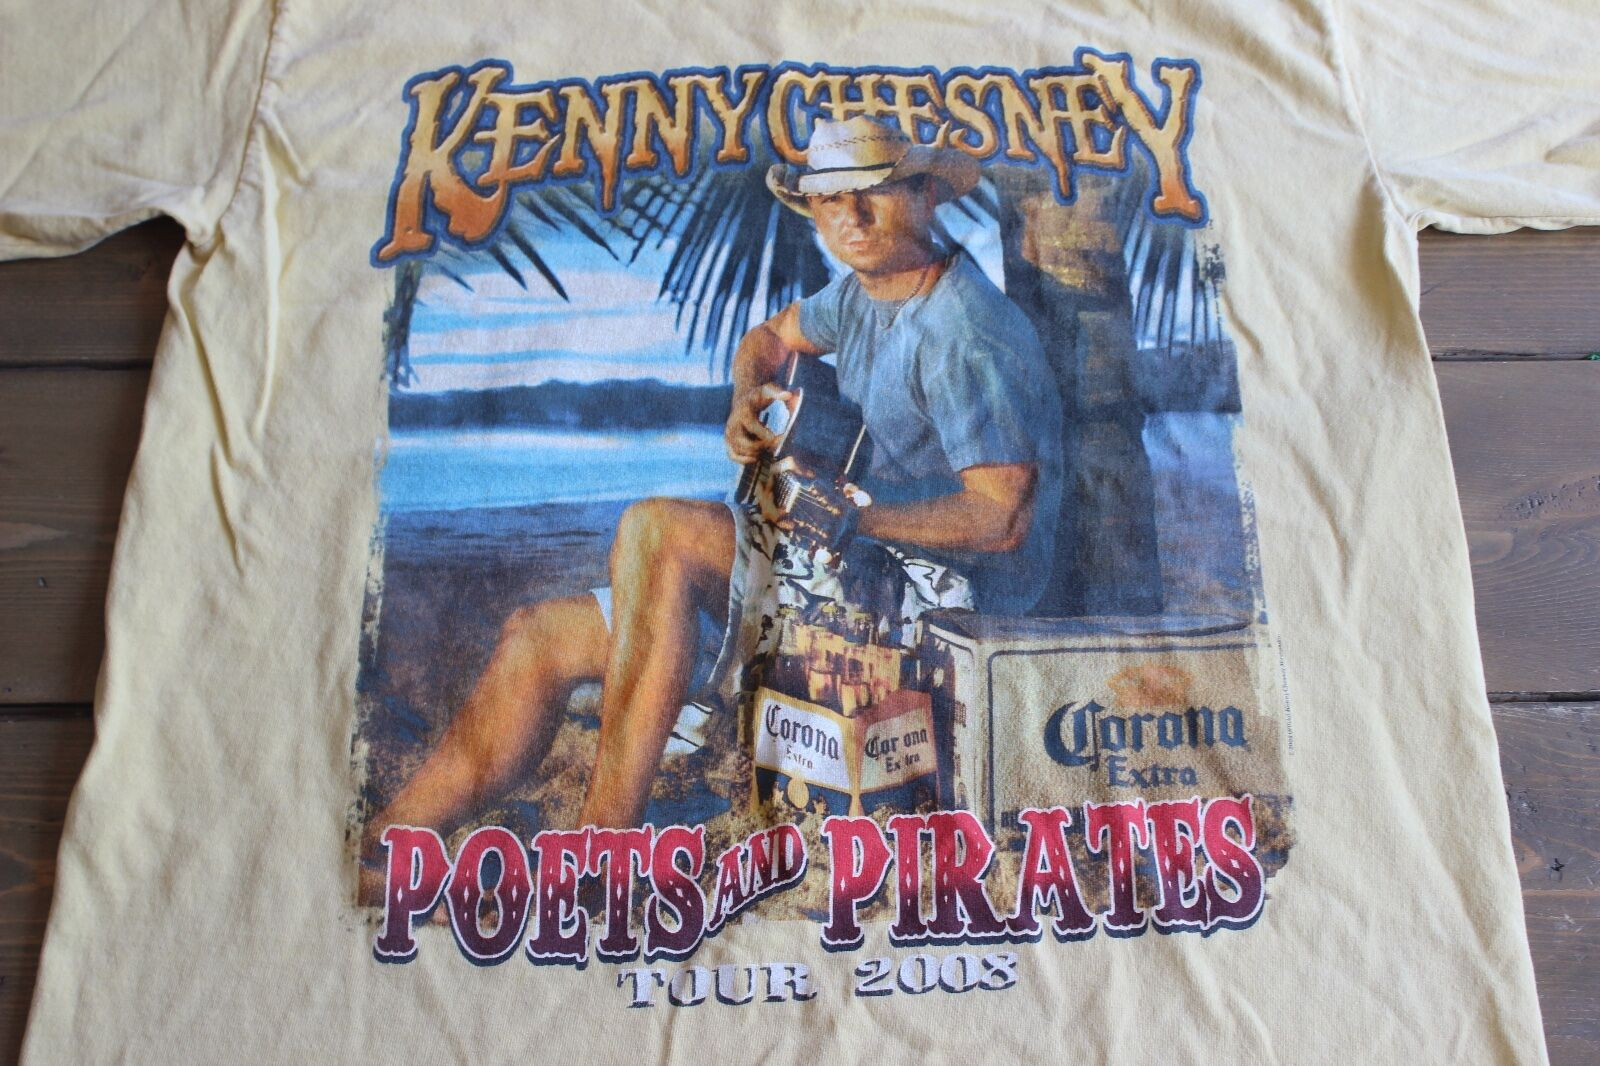 Kenny Chesney Poets and Pirates 2008 Concert Tour Shirt M